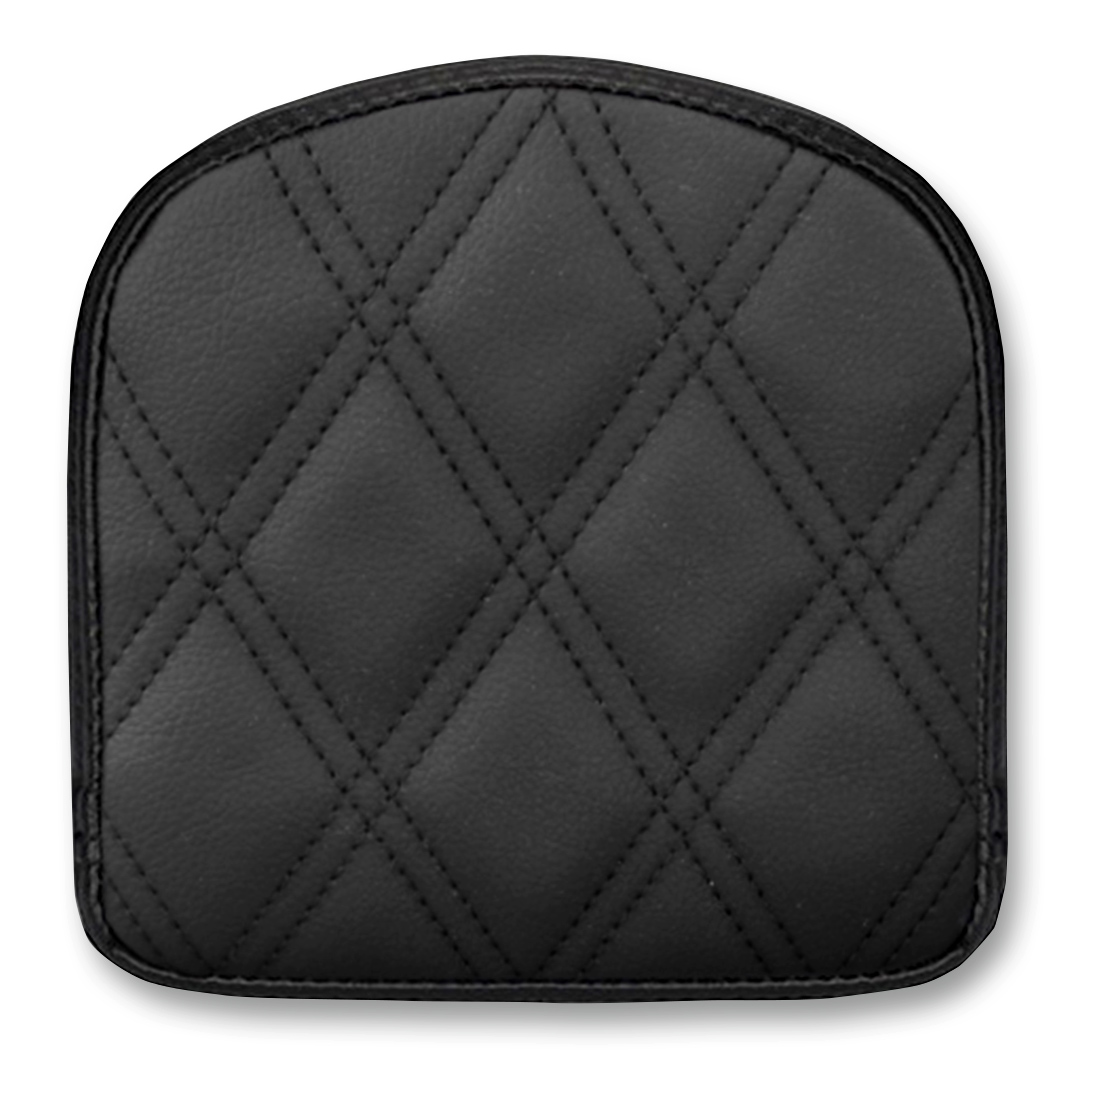 Saddlemen Sissy Bar Pad Black 6″ Diamond Stich